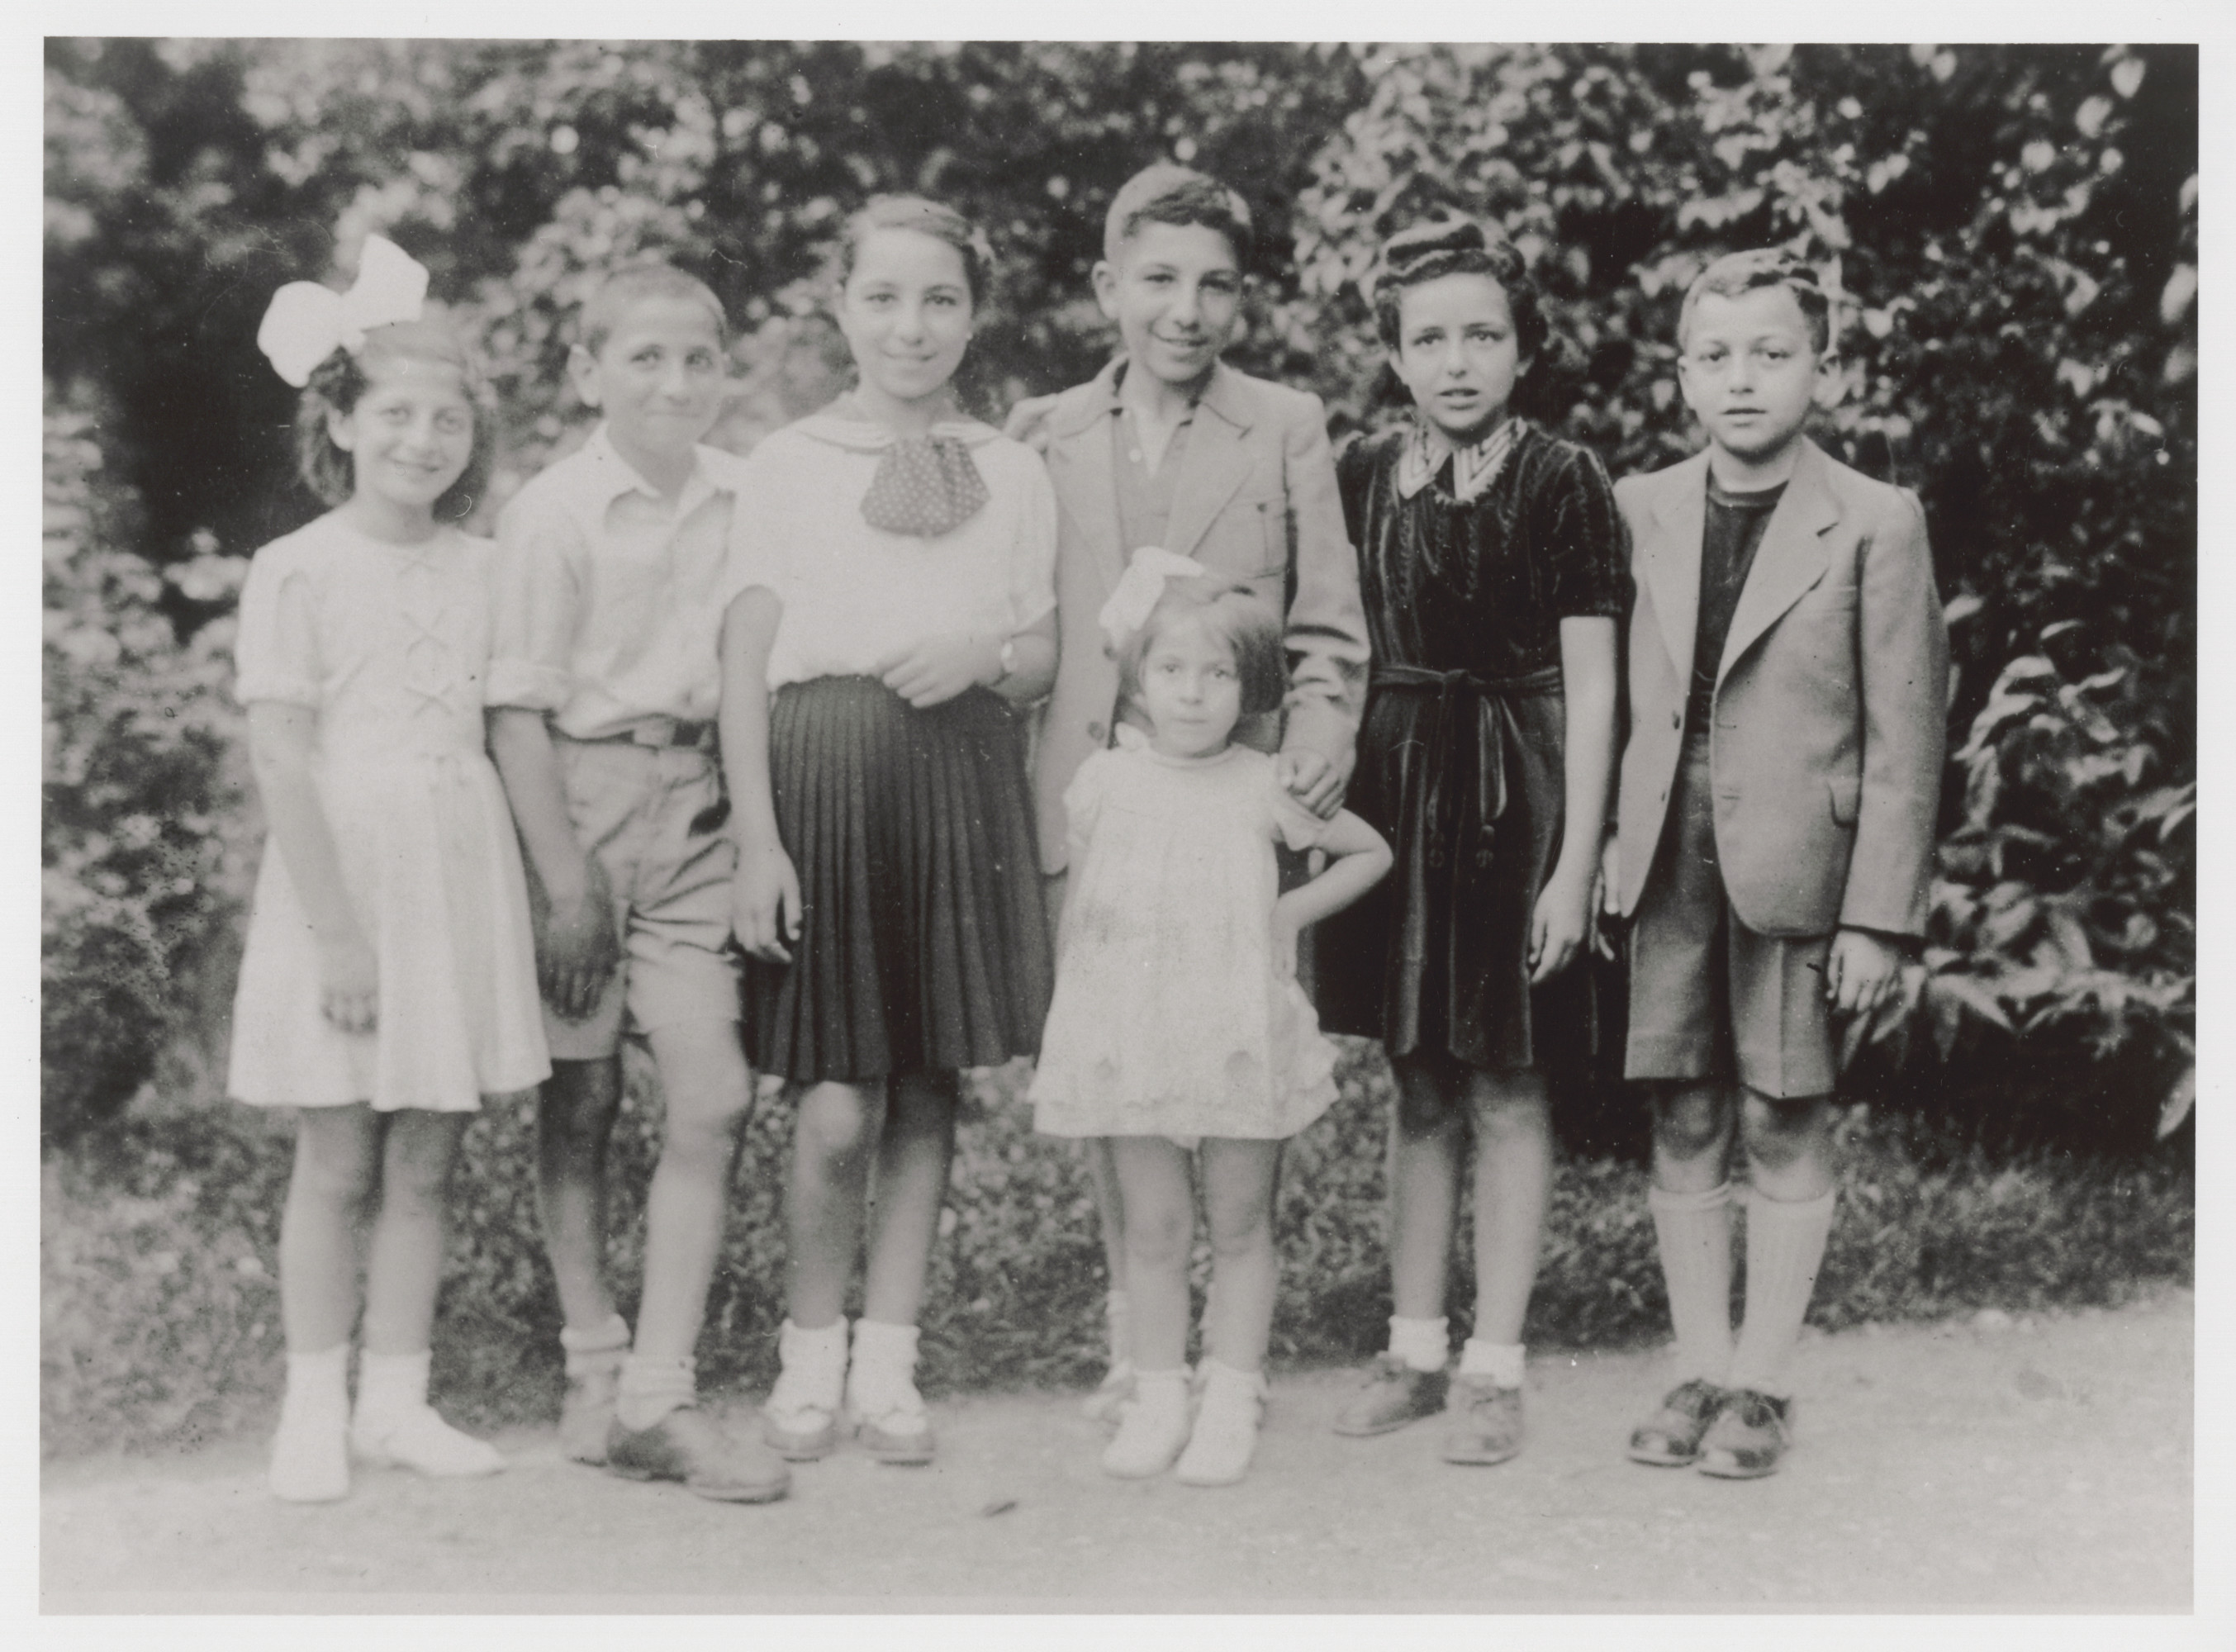 A group of friends on summer vacation.  Among those pictured are Stella and Alberto Levy (back row, third and fourth from left).